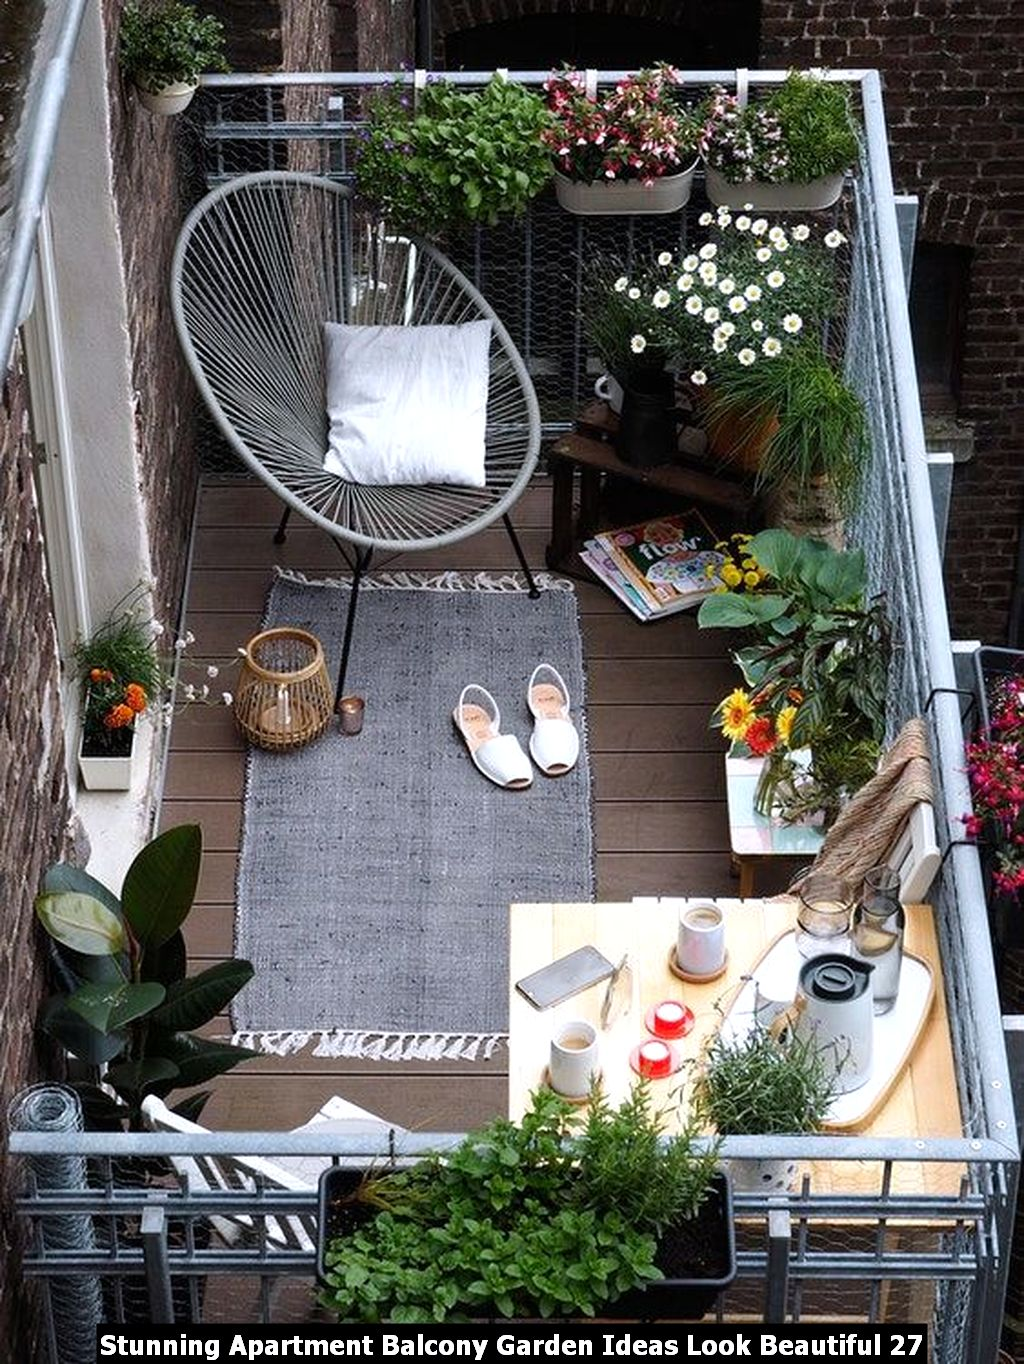 Stunning Apartment Balcony Garden Ideas Look Beautiful 27